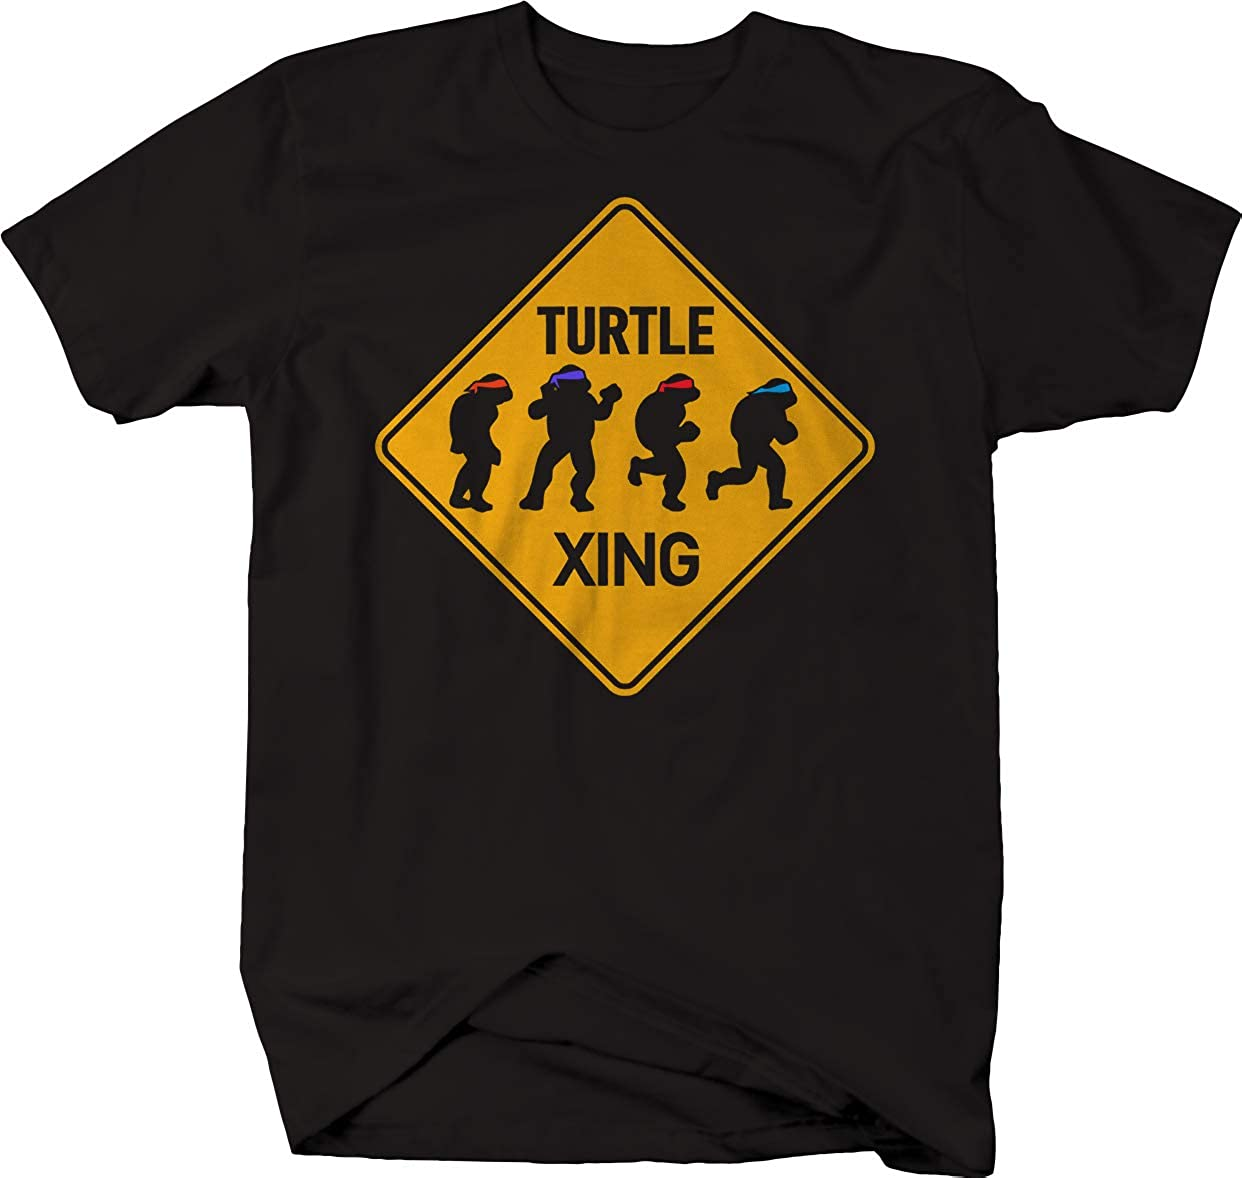 Amazon.com: Ninja Xing Road Sign Turtle Silhouette Adventure ...